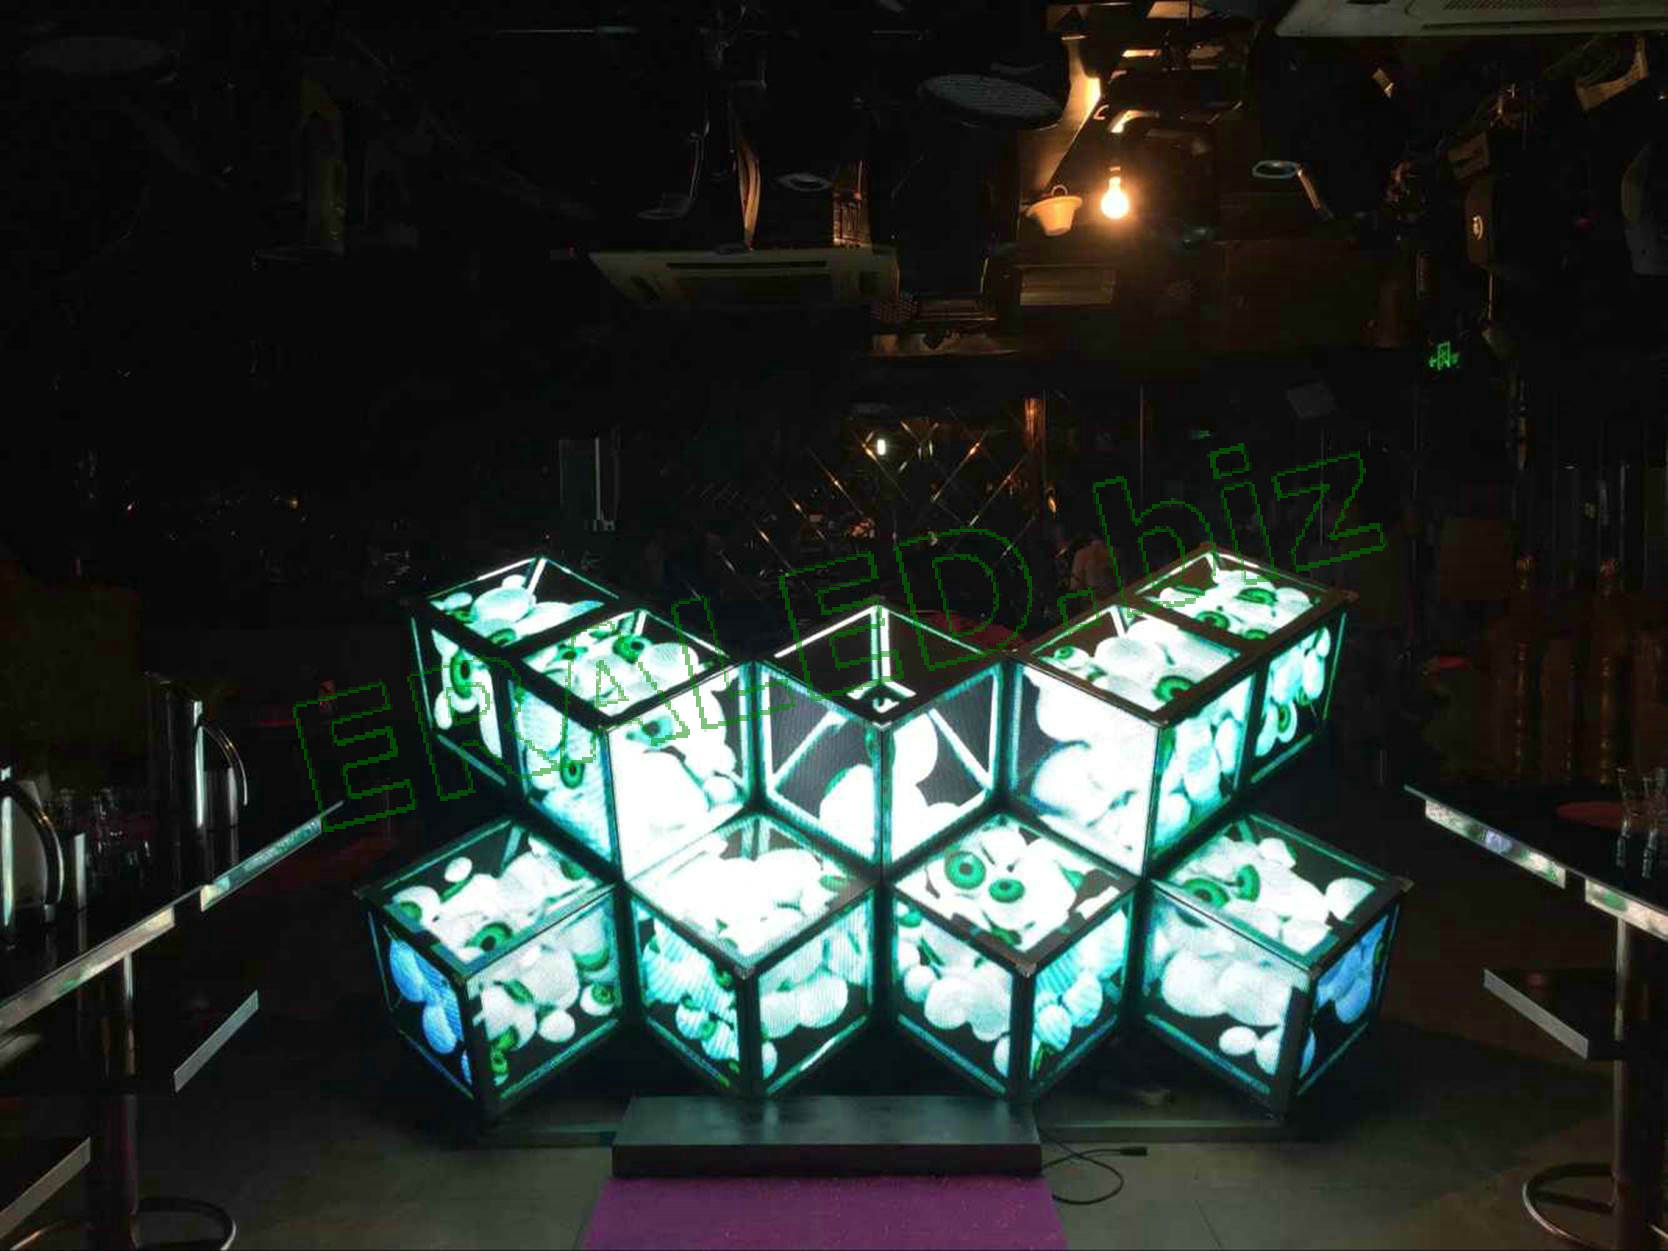 Magic cube LED display